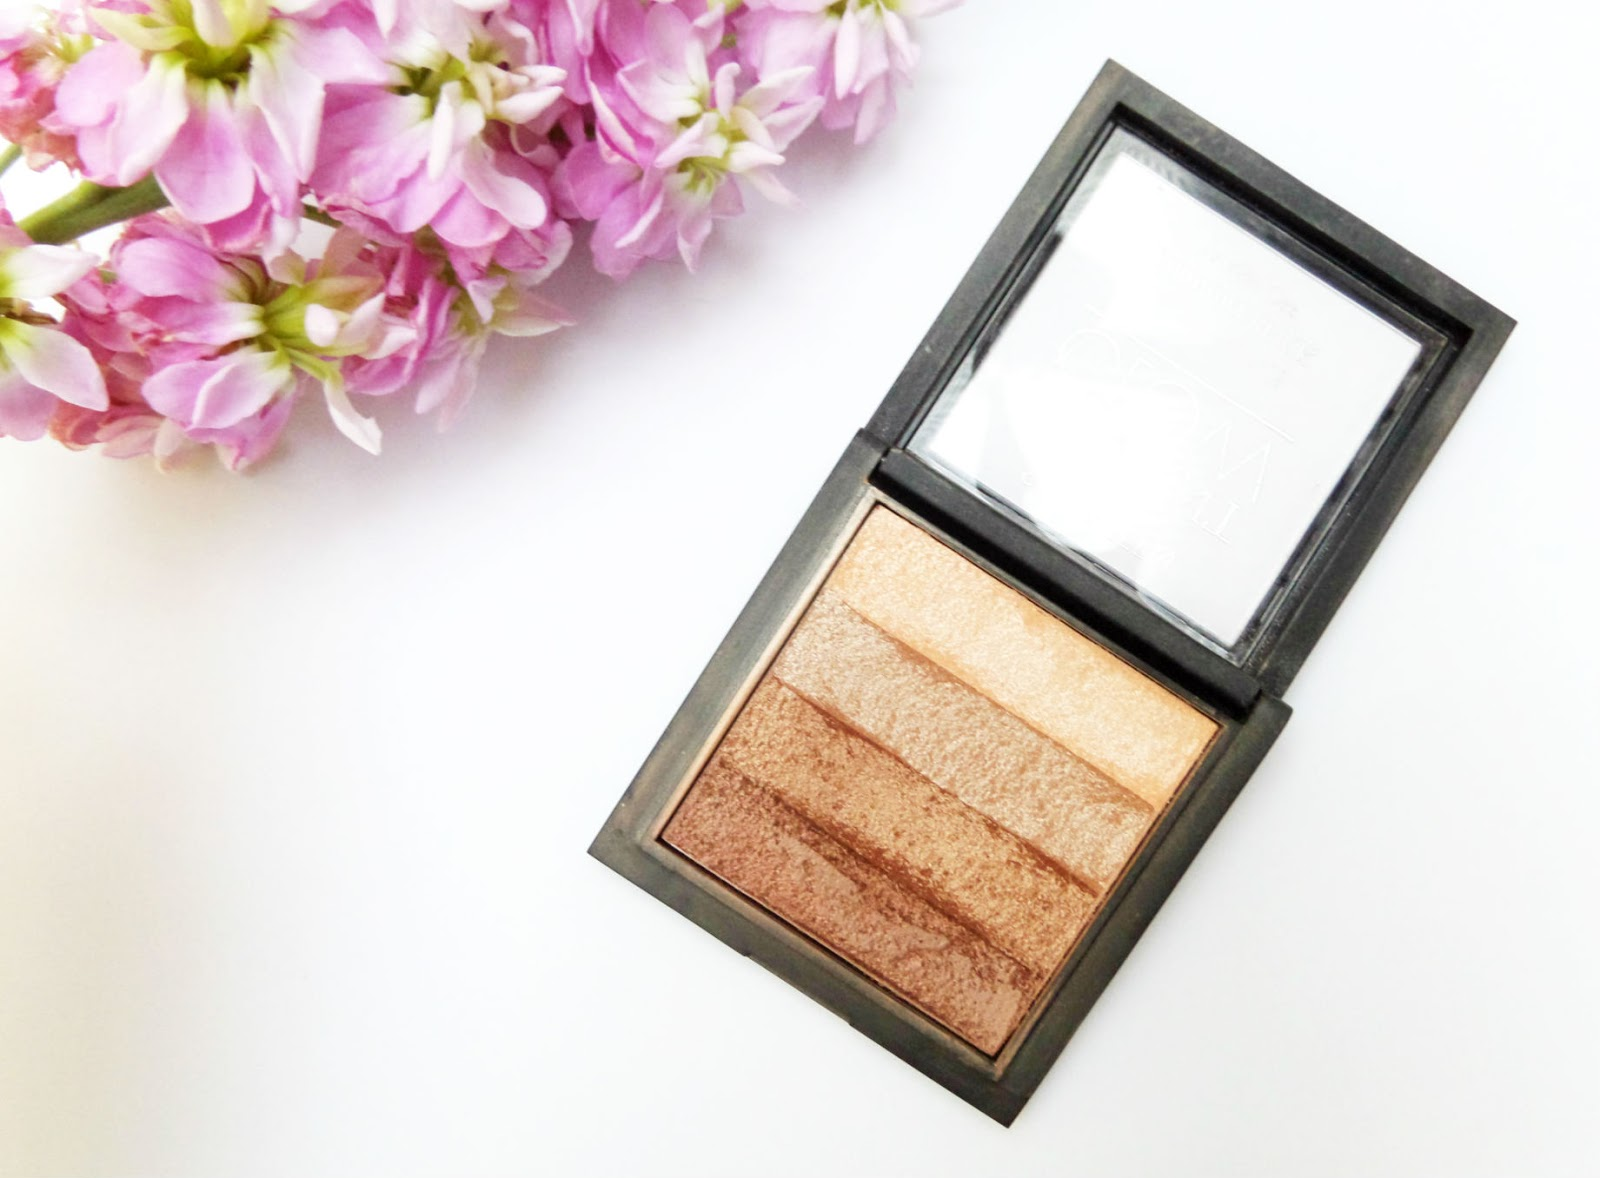 The Seventeen Instant Glow Shimmer Brick